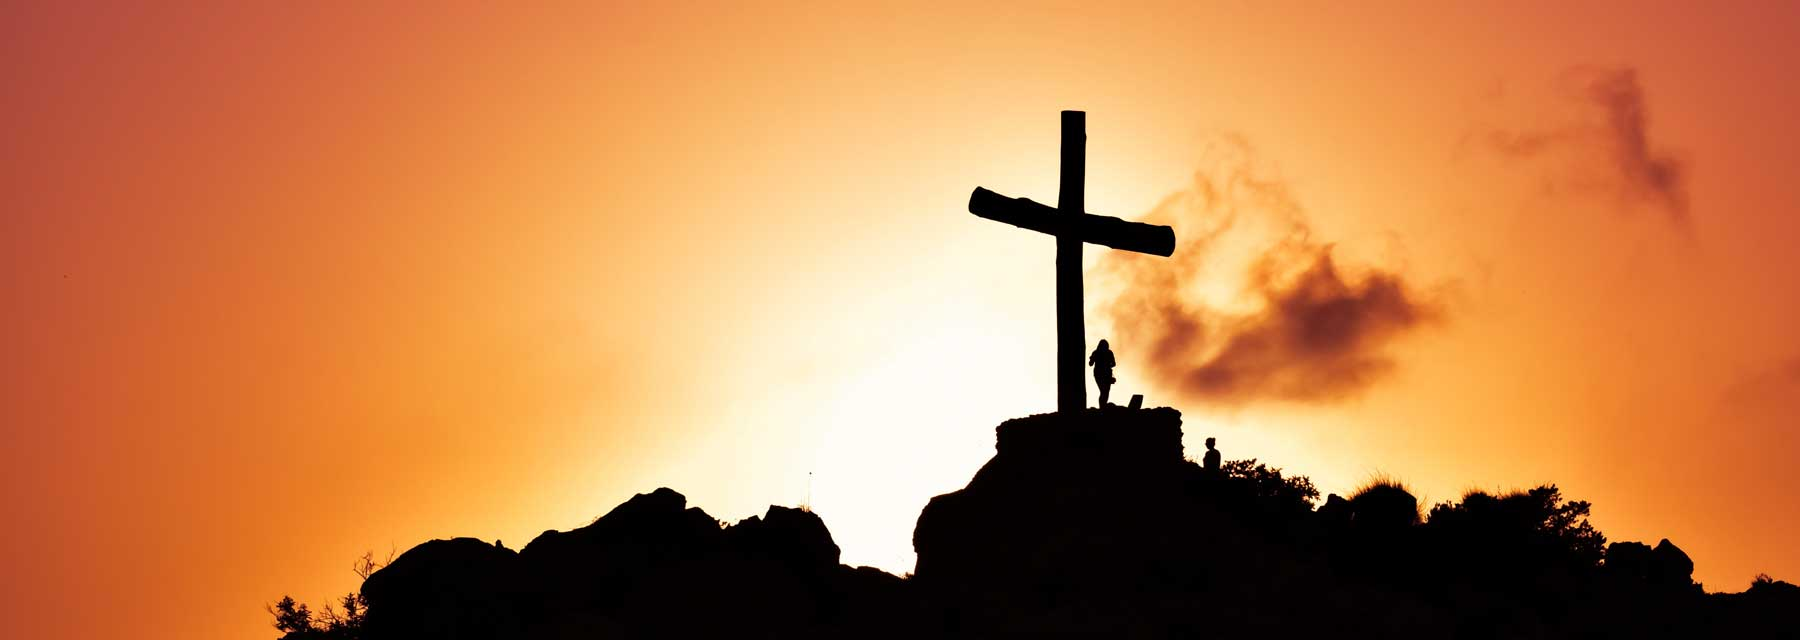 A large cross and person silhouetted against an orange sky